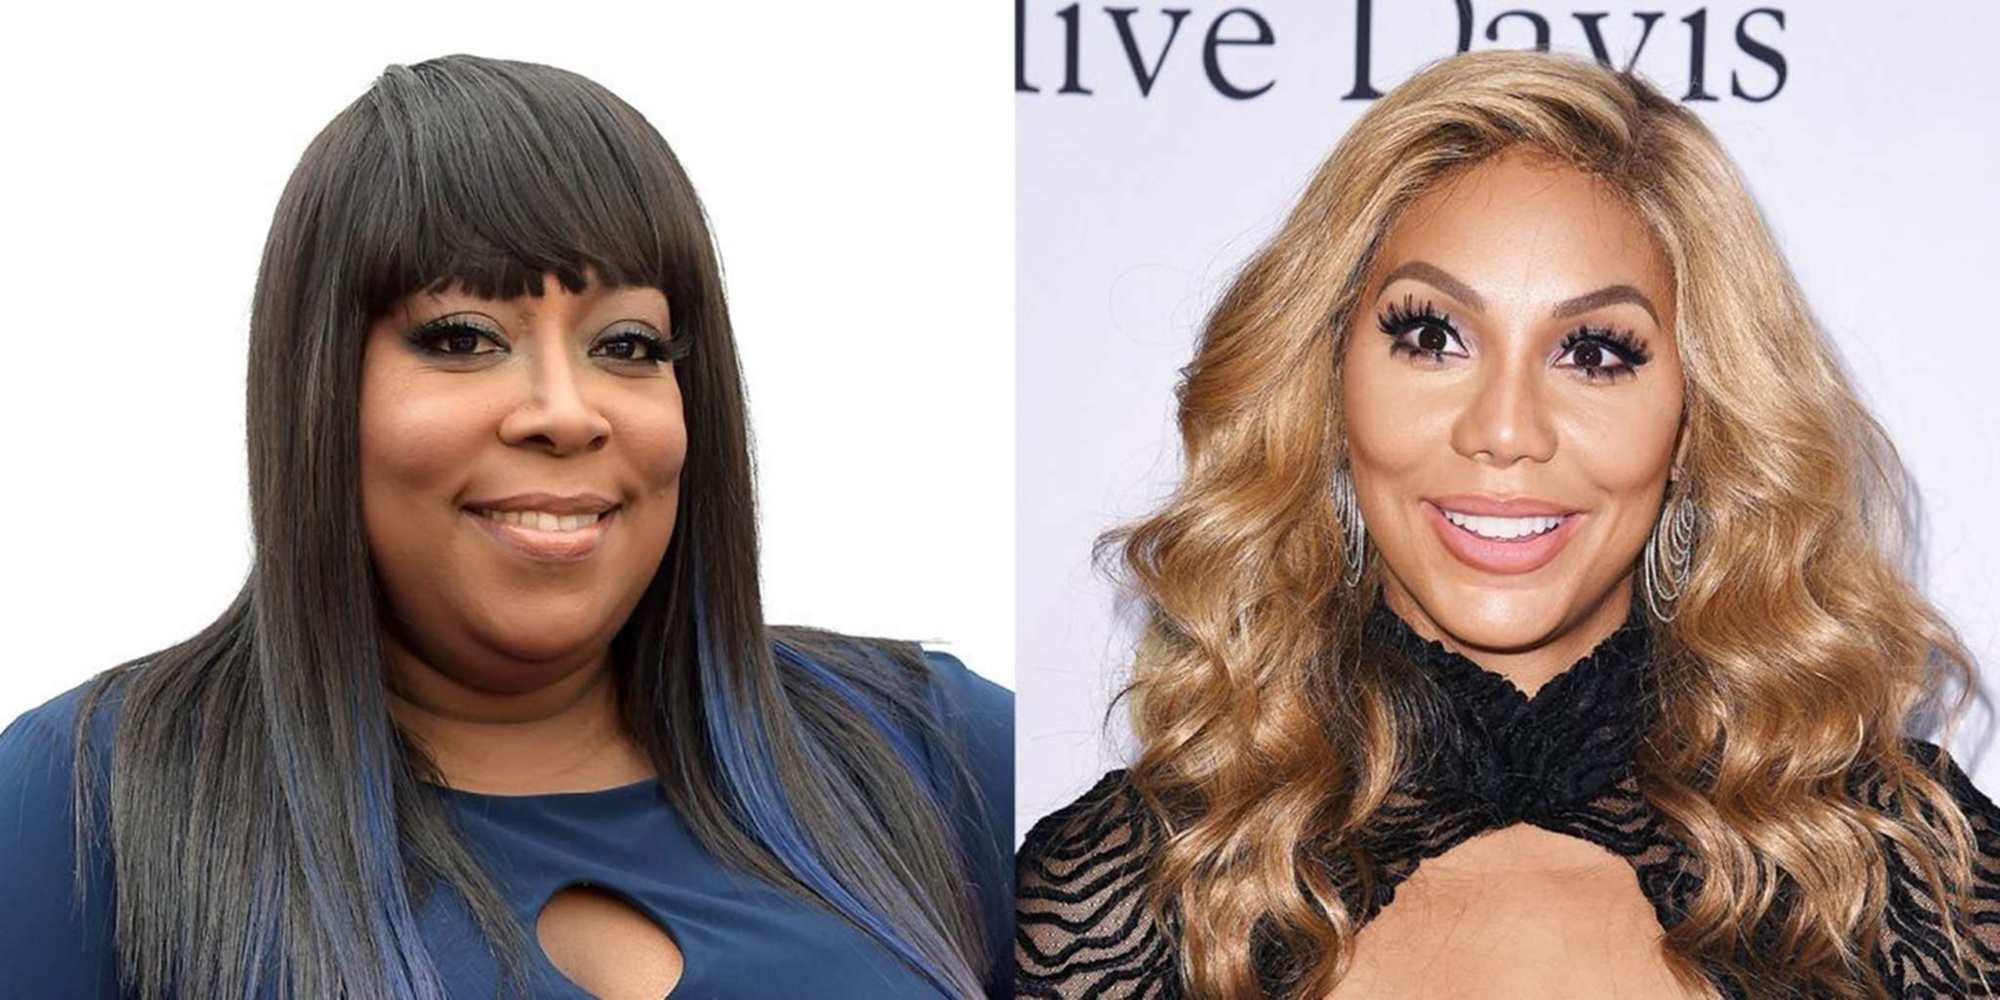 Loni Love Tamar Braxton The Real